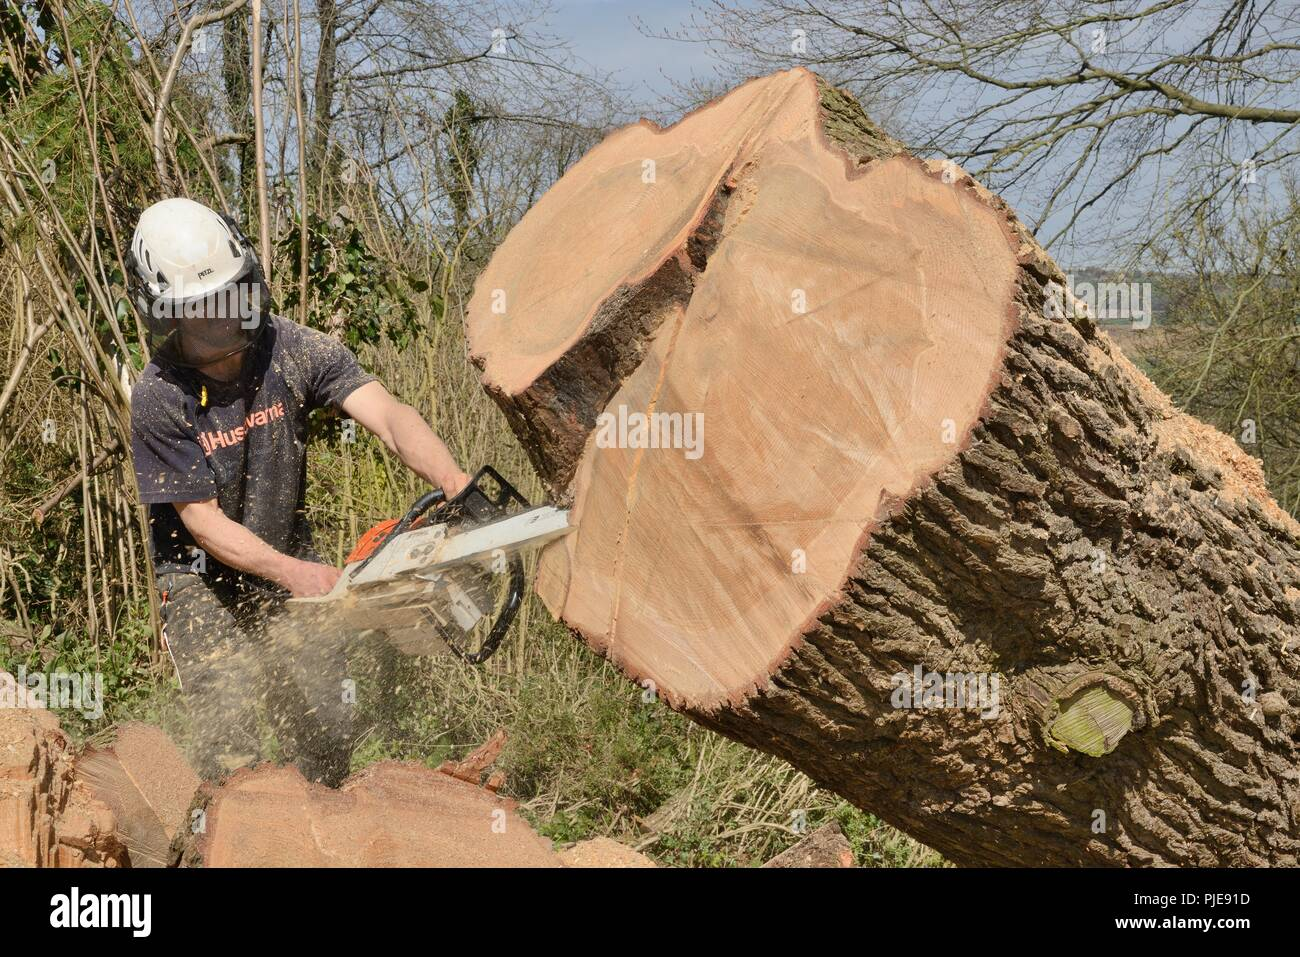 Tree surgeon sawing up the trunk of big Deodar cedar tree uprooted in a storm, Wiltshire UK, April. - Stock Image